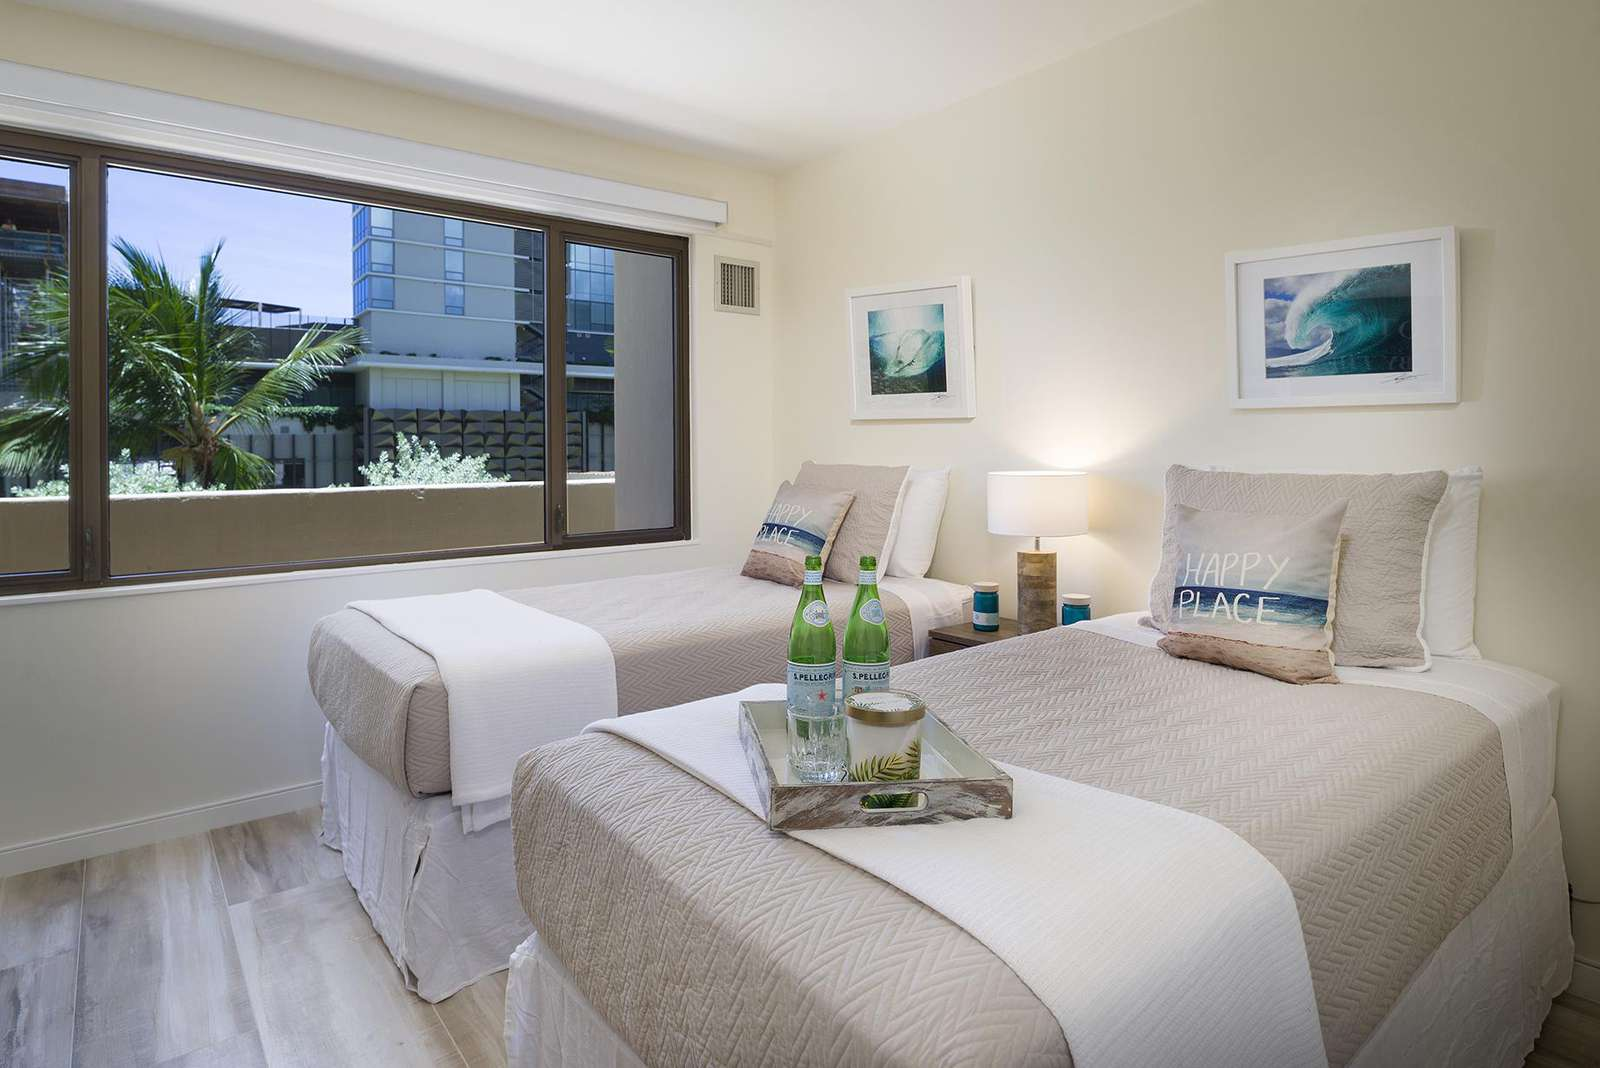 Waikiki One Bedroom Condo with Free Wifi, Cable, and Parking!